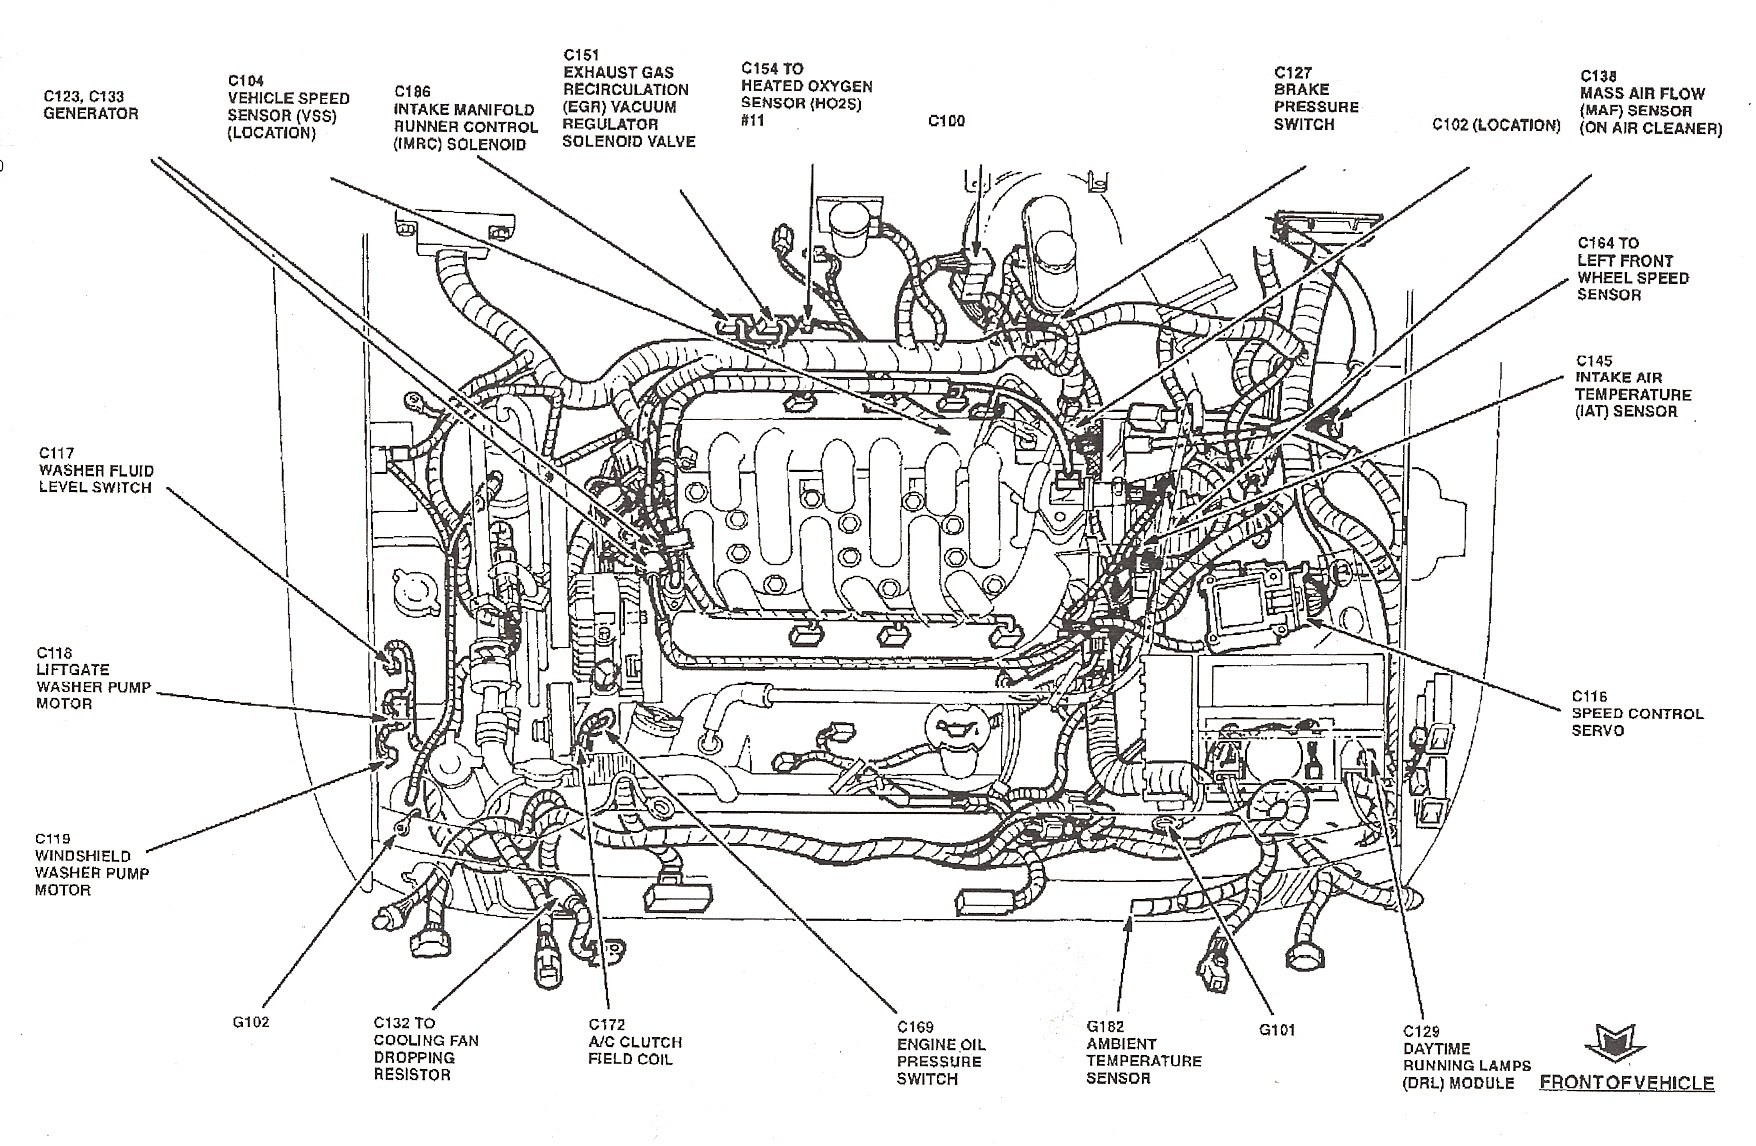 Zetec Engine Diagram ford 3 Valve Engine Diagram Of Zetec Engine Diagram